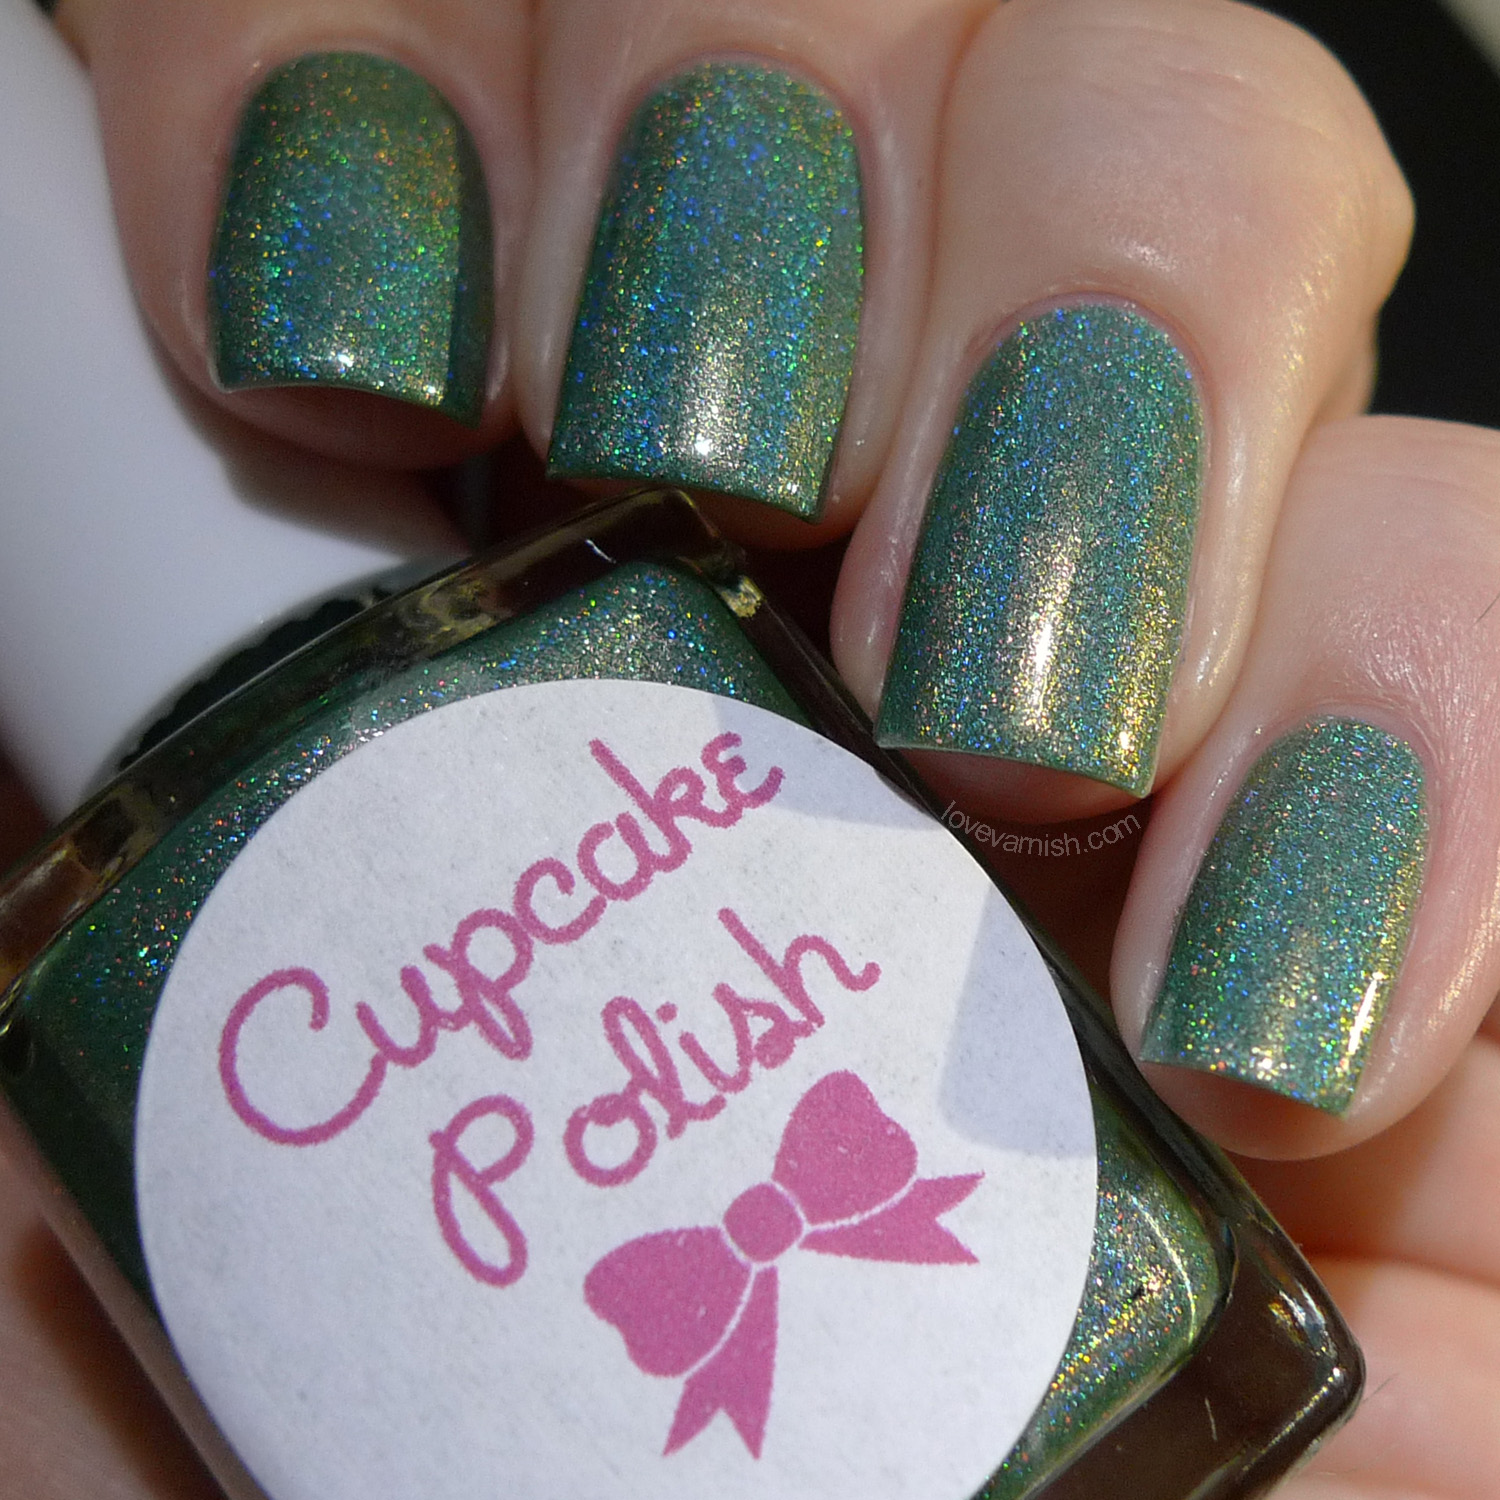 Cupcake Polish Earth Girl